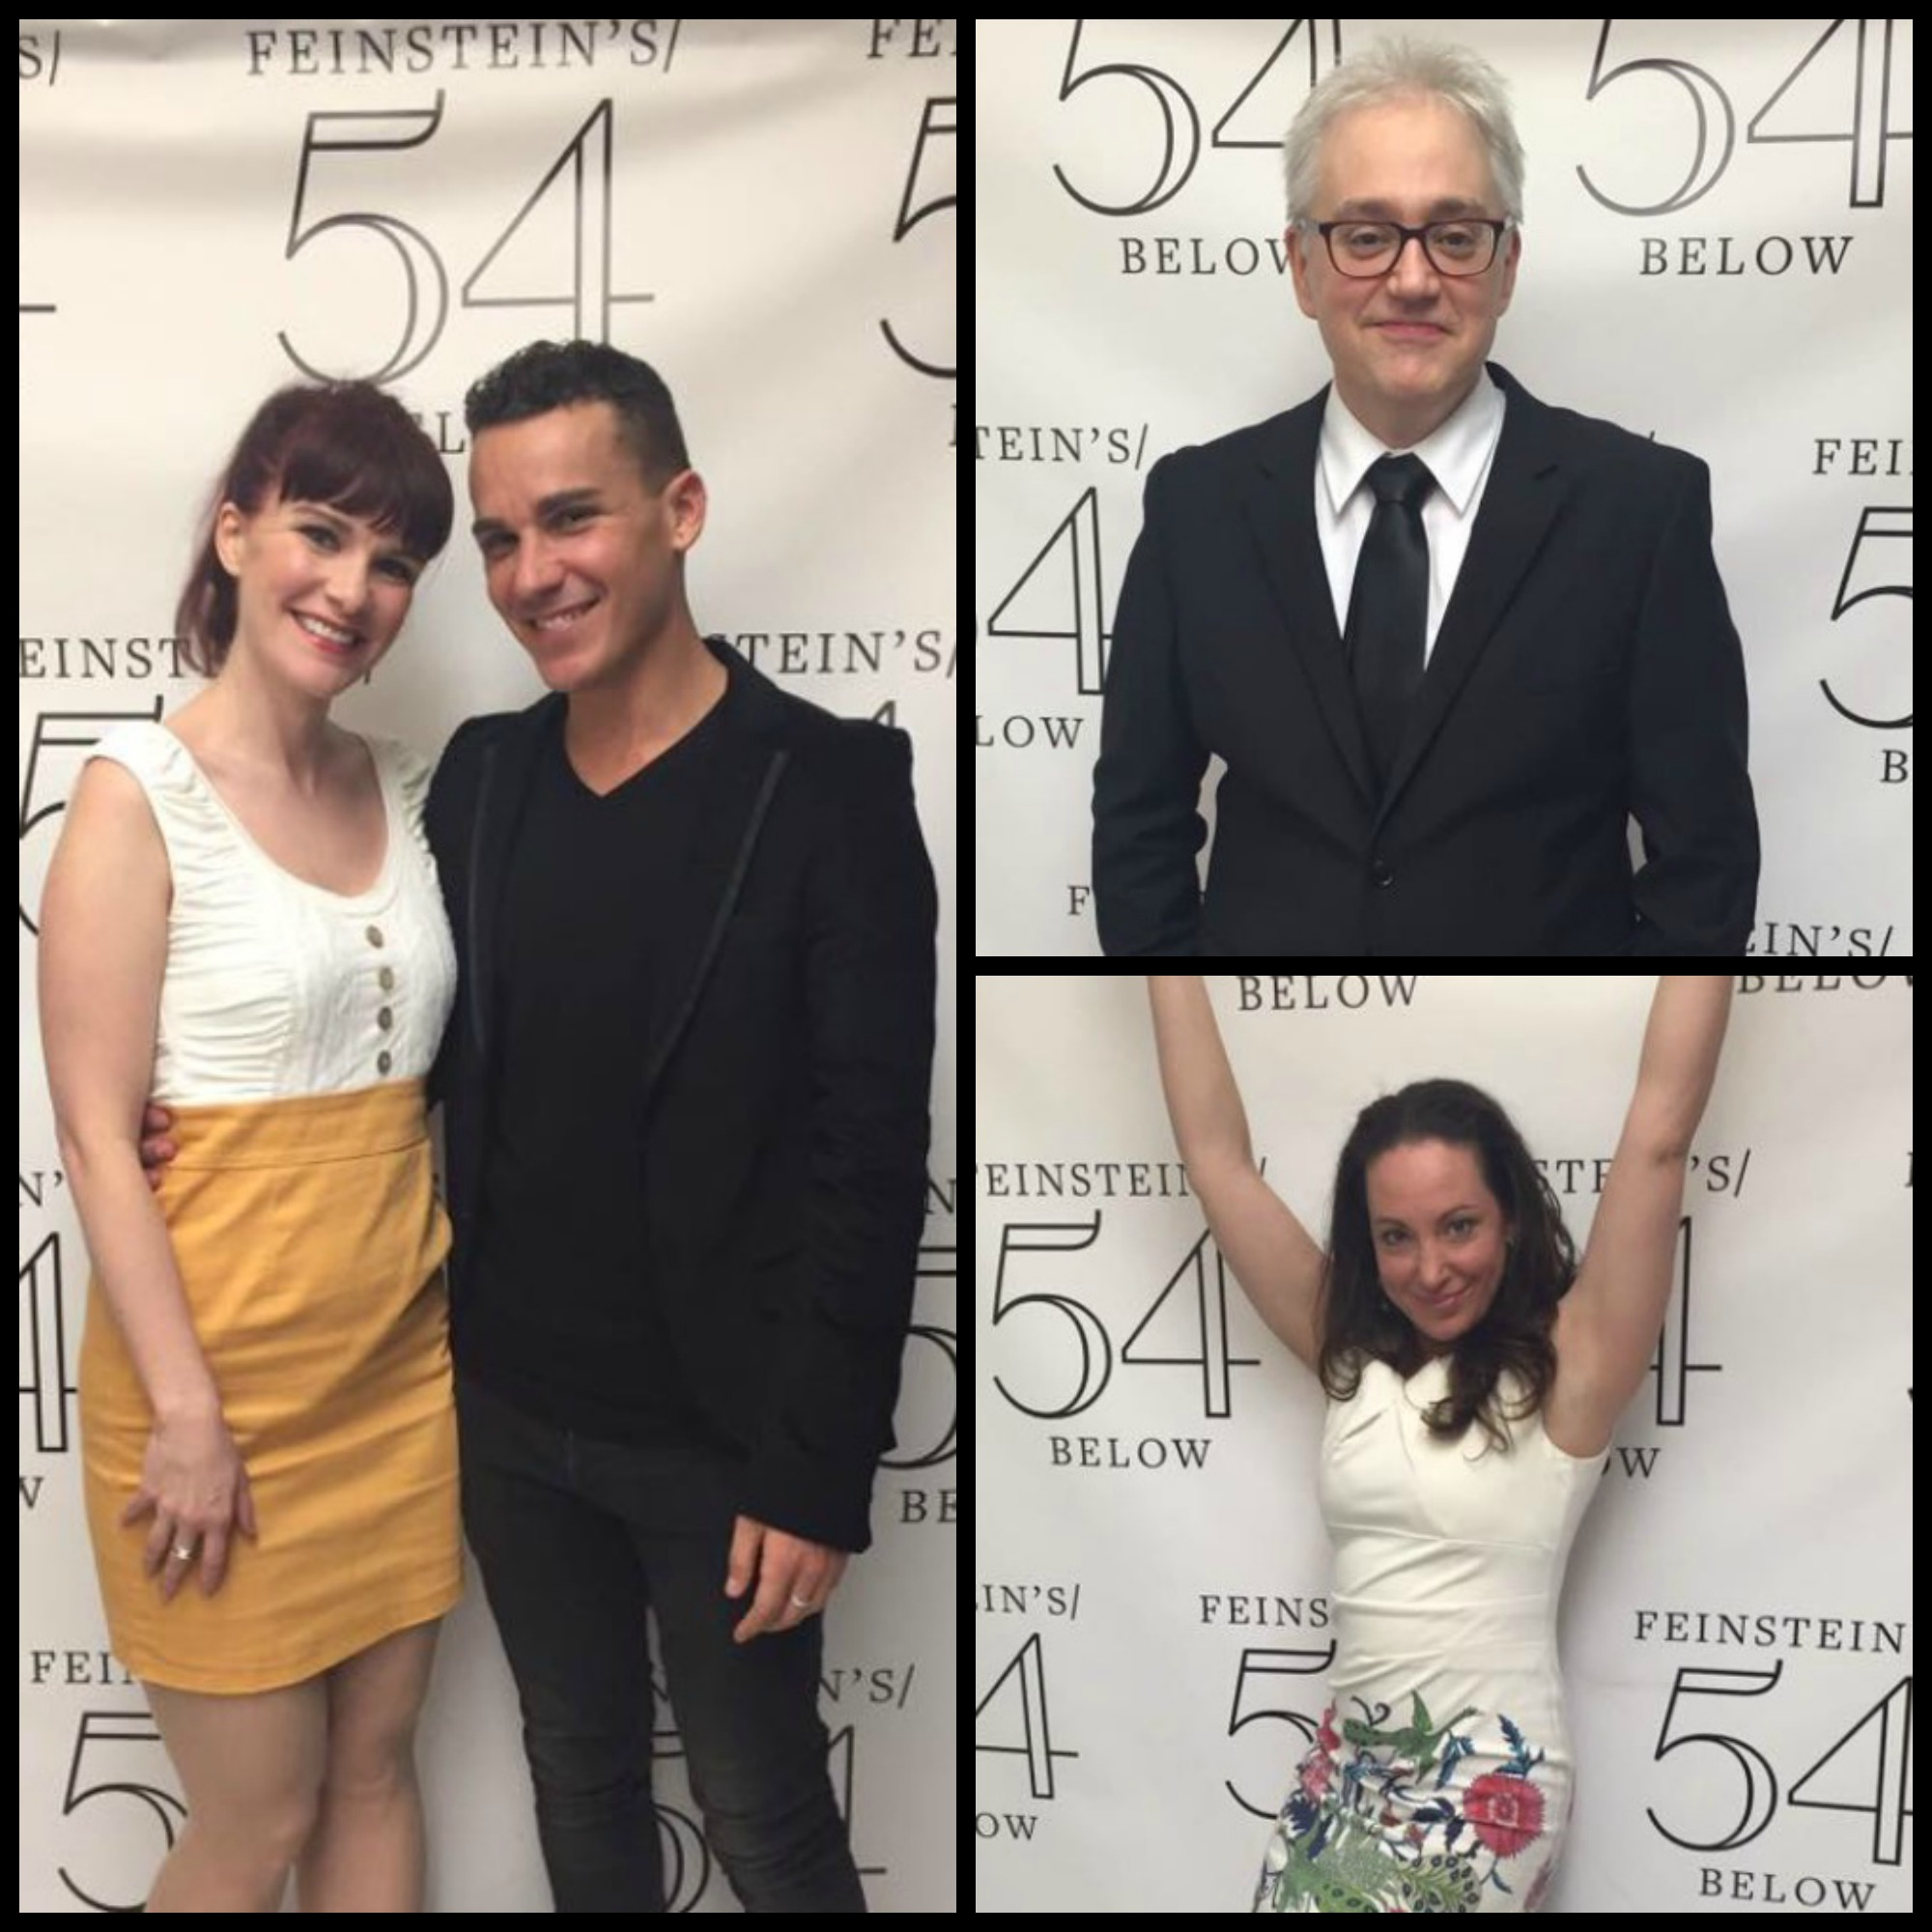 Alumni from the classes of 2007, 2003 and 2000 performed at 54 Below